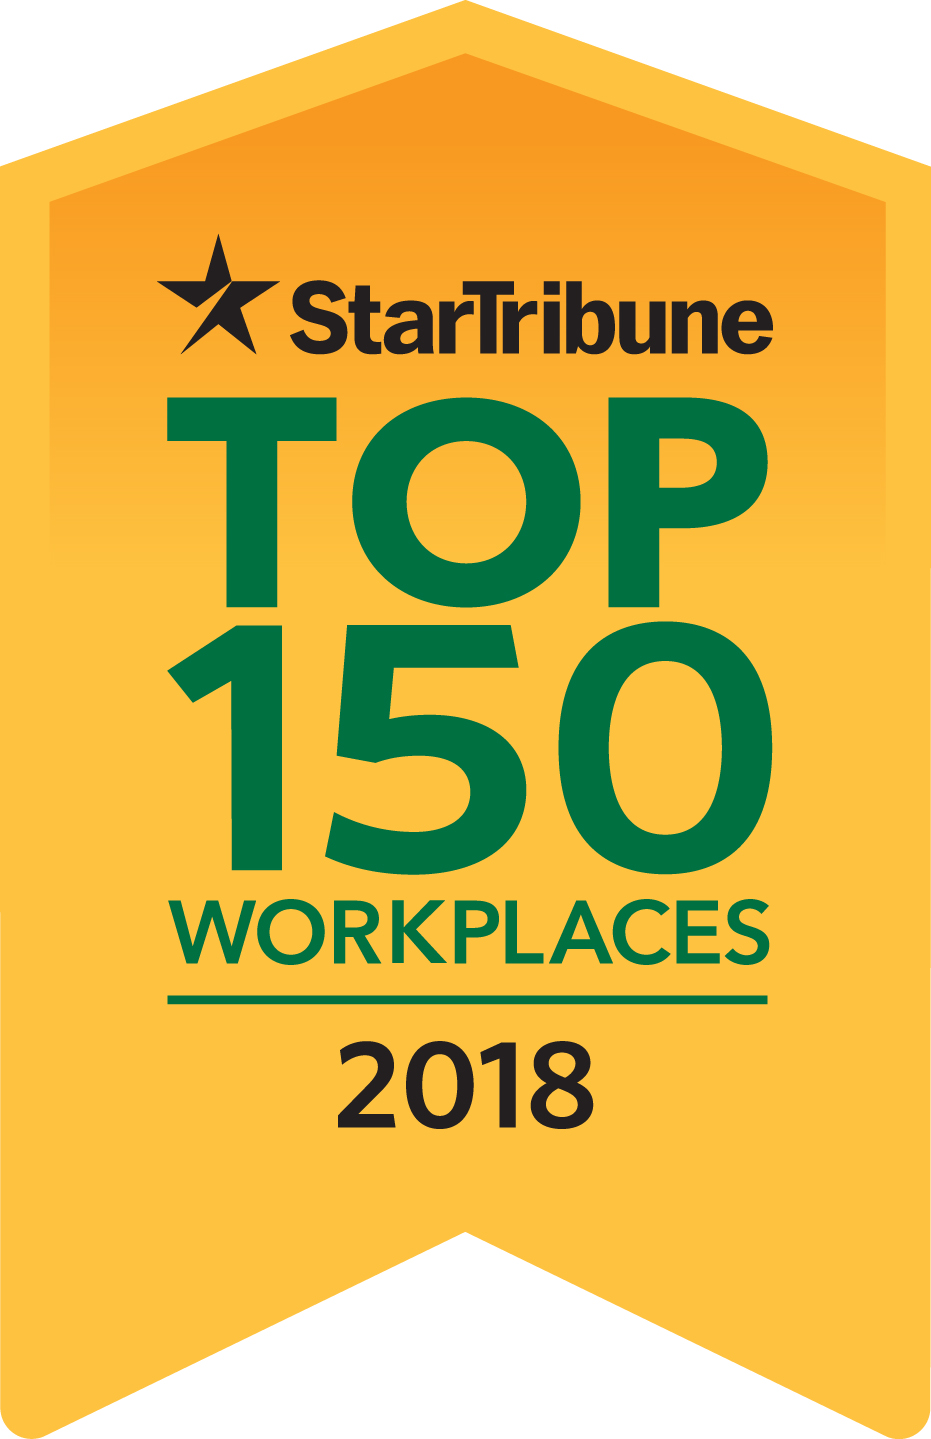 2018 Top 150 Workplaces